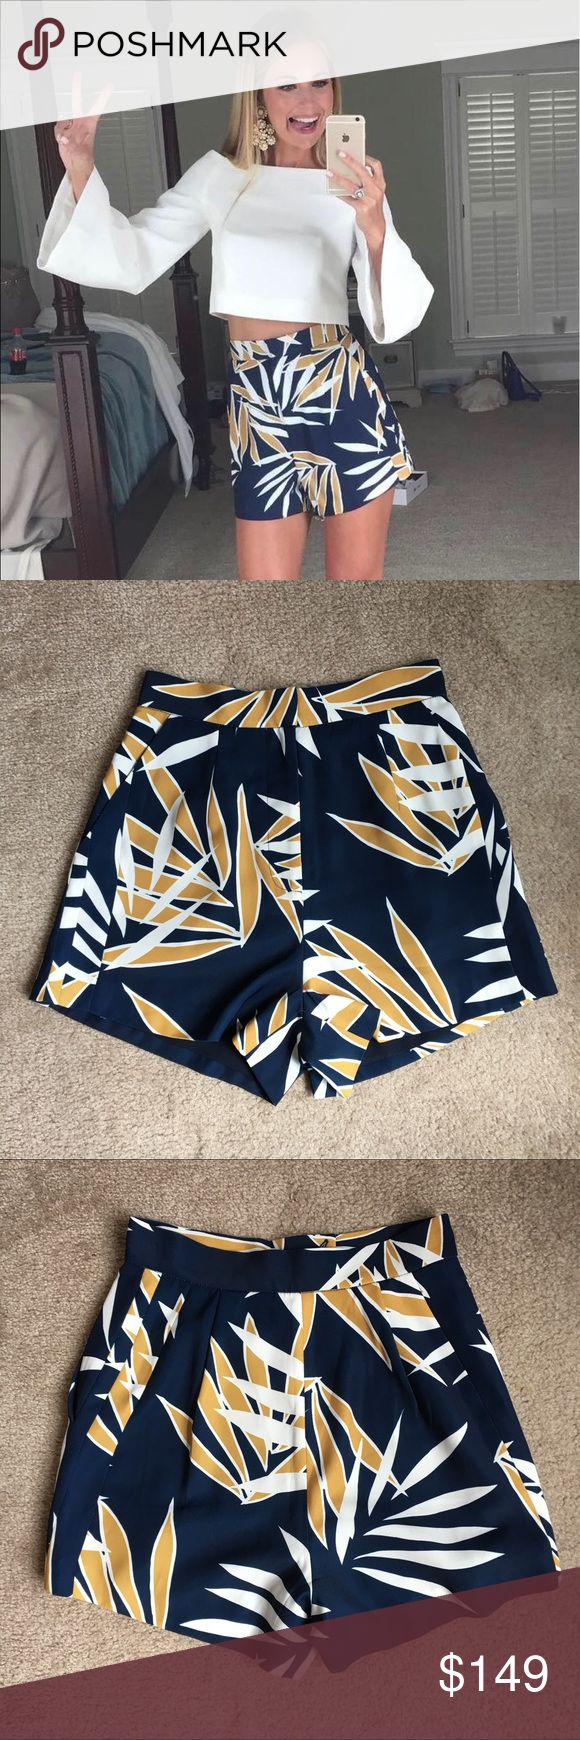 Finders Keepers Last Time Short Finders Keepers Last Time Short. As seen on Cameran Eubanks on Southern Charm. New. size XS . Lined and has side pockets Finders Keepers Shorts